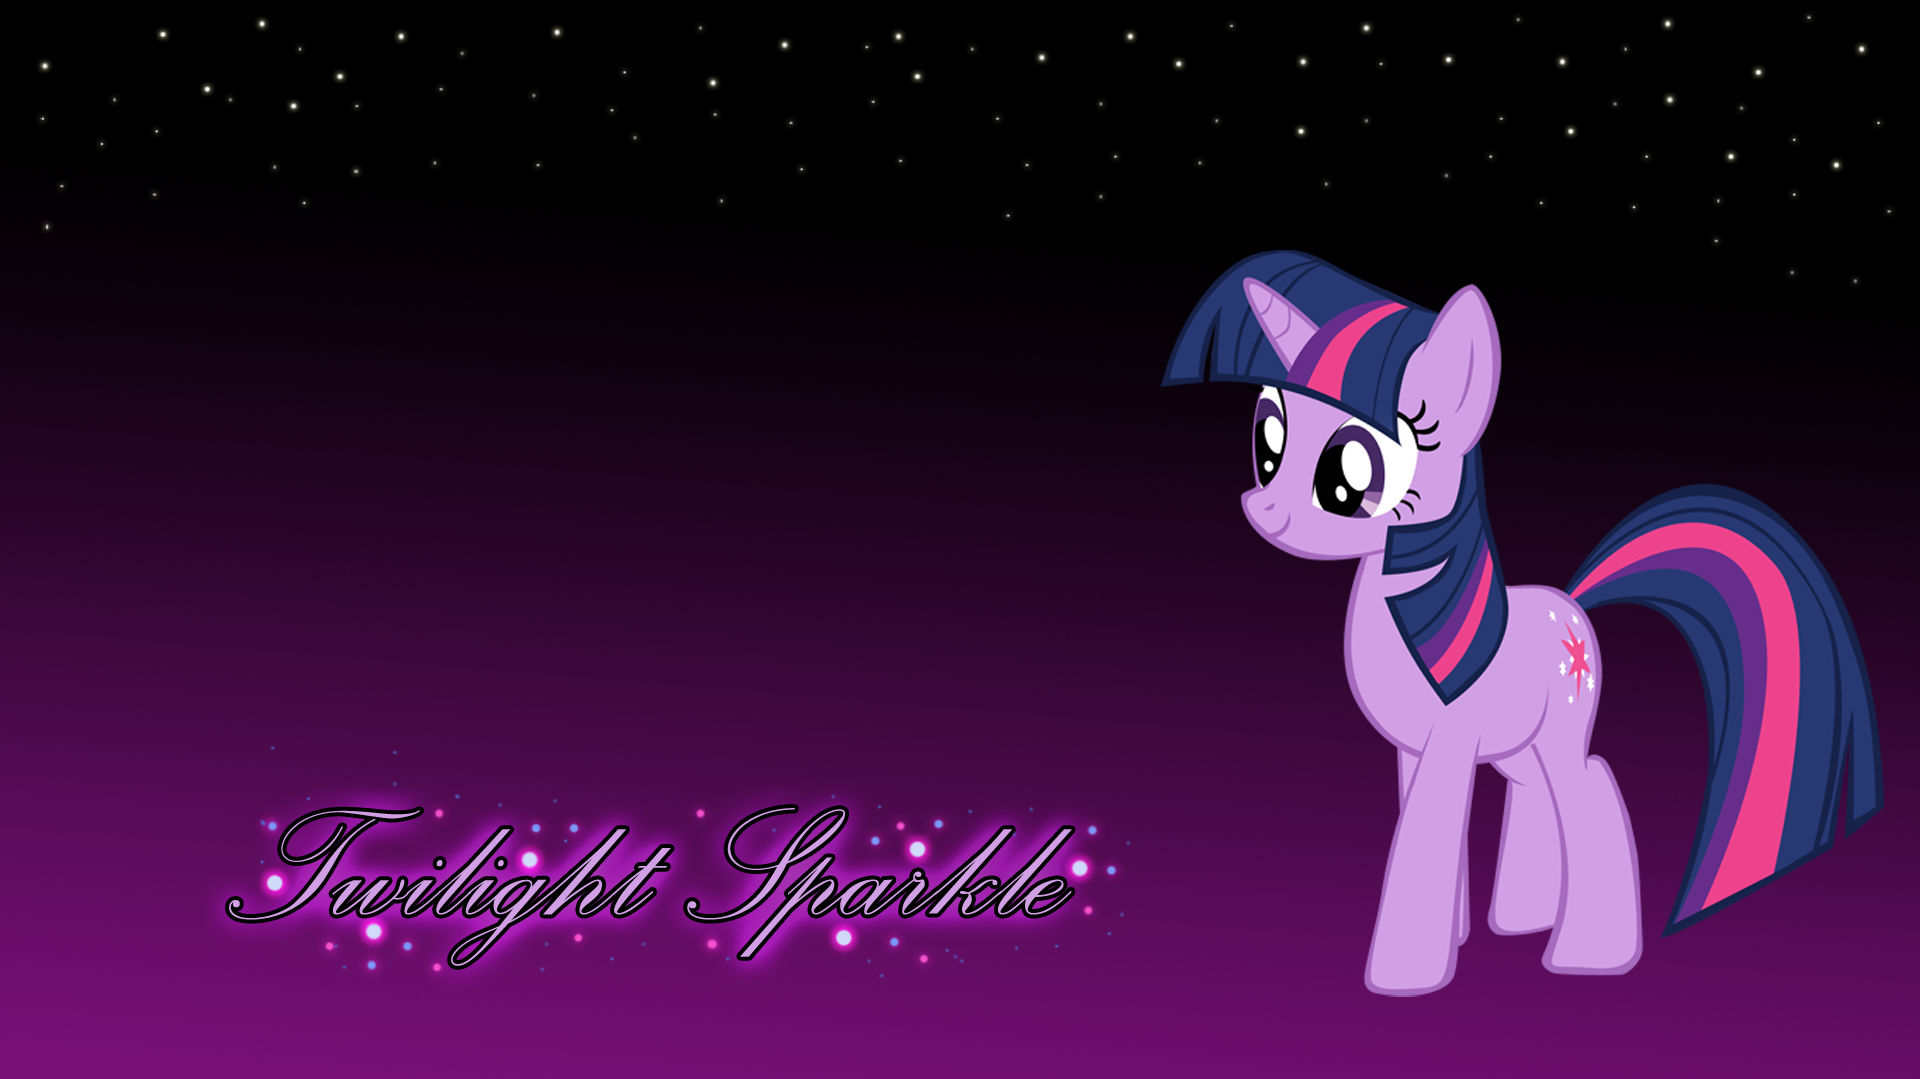 twilight sparkle wallpaper - photo #25